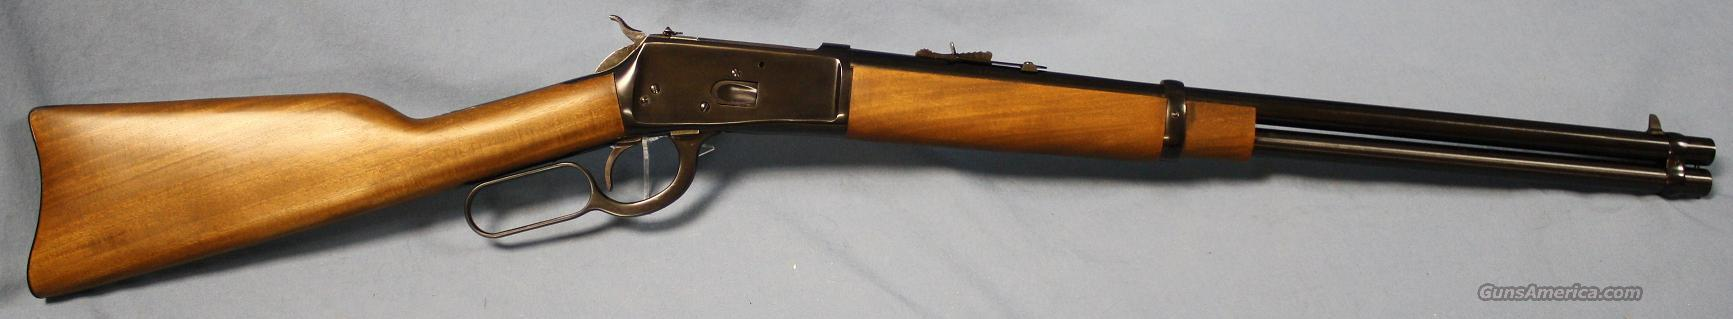 Rossi Model 92 Lever Action Carbine .45 Colt  Guns > Rifles > Rossi Rifles > Cowboy